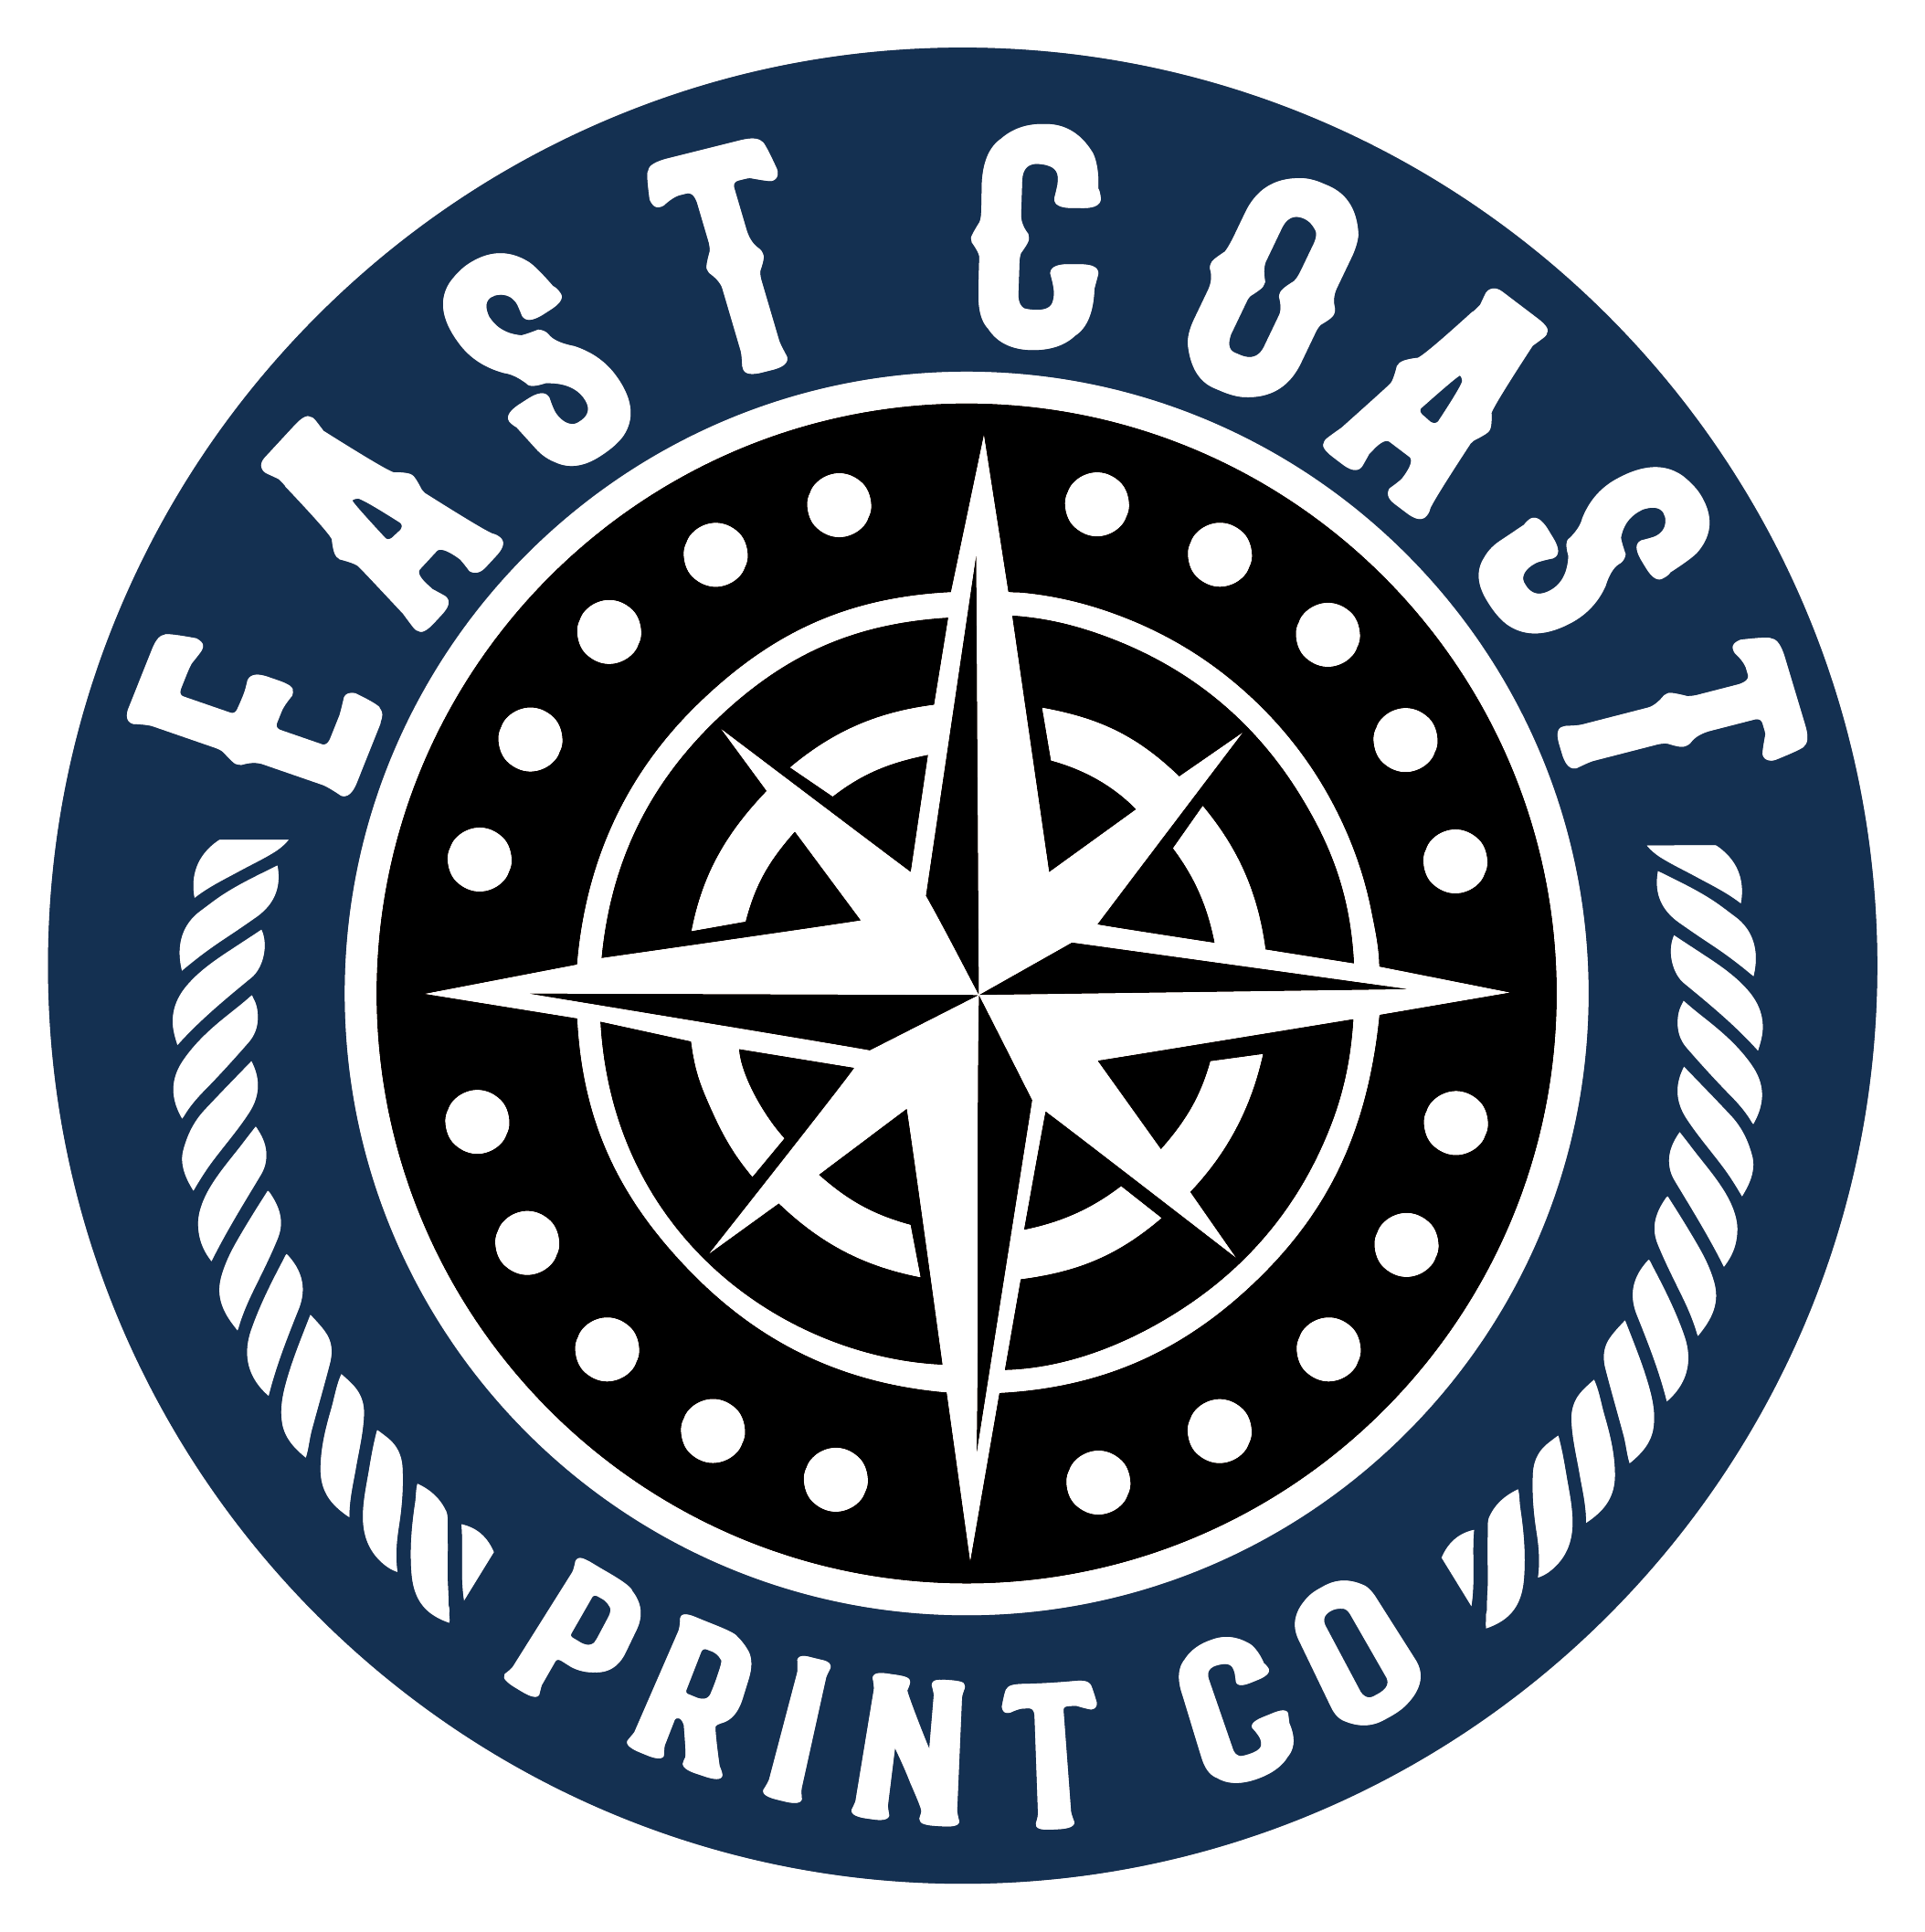 East Coast Print Co